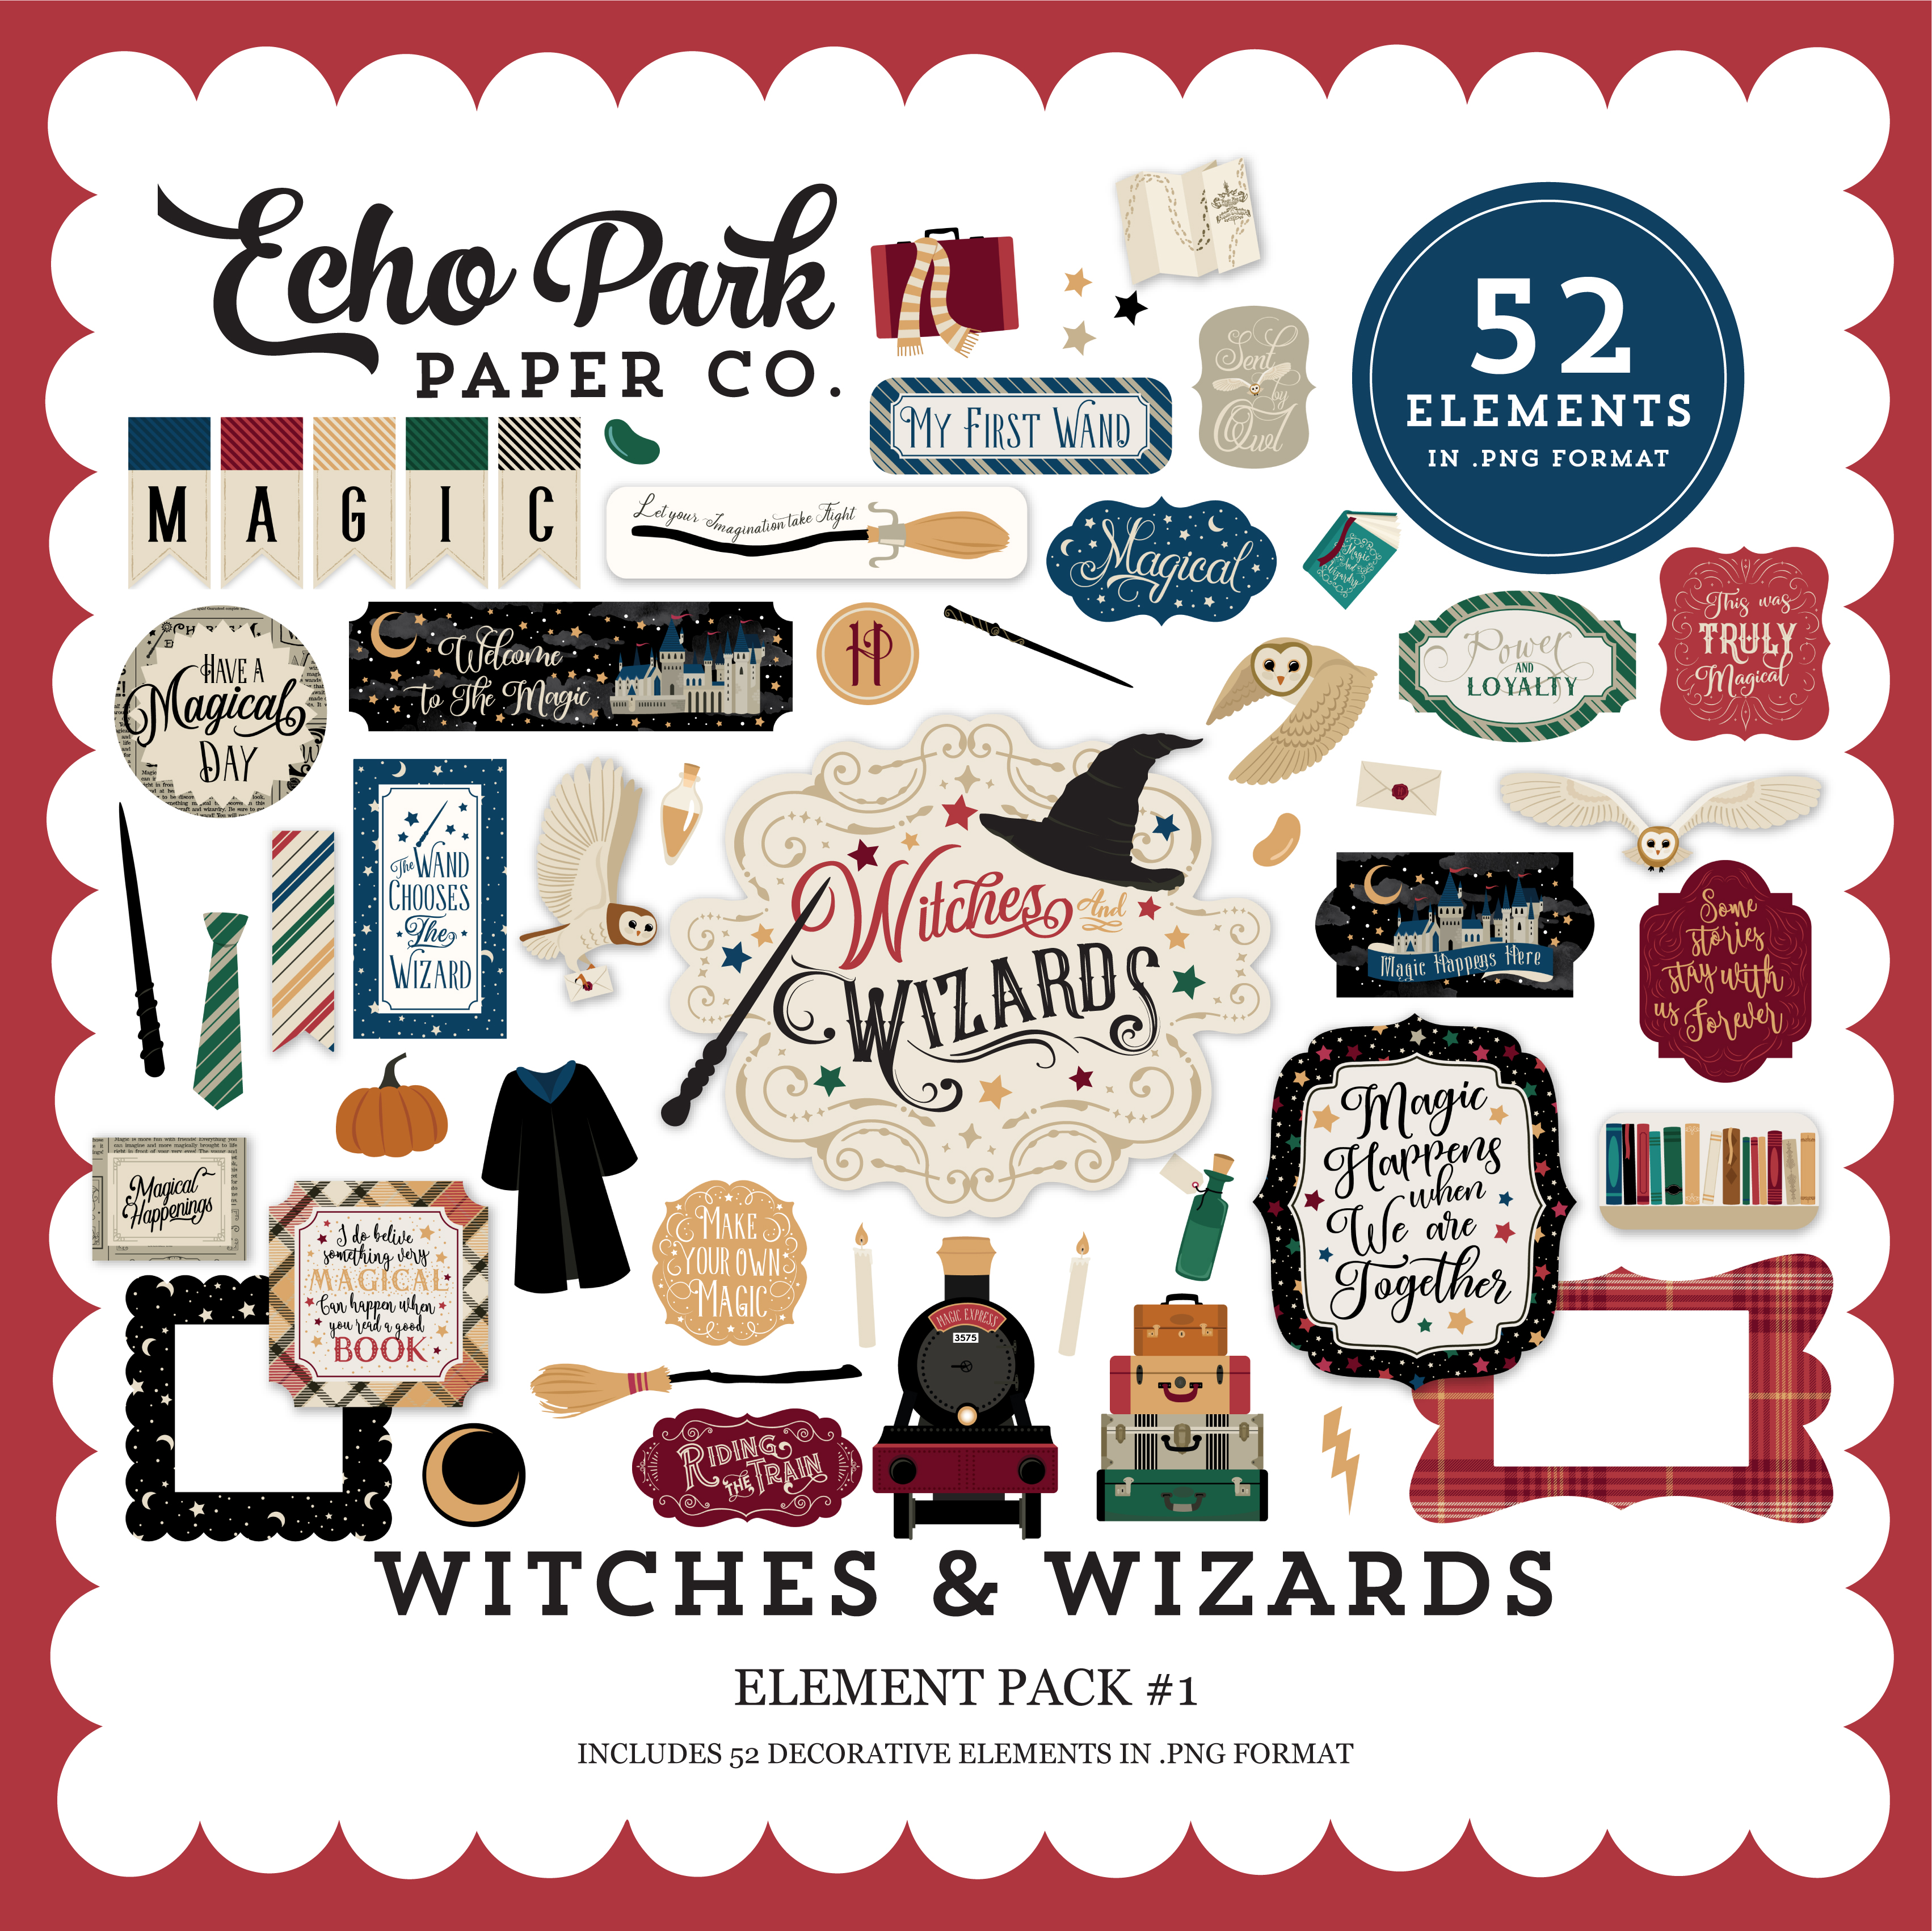 Witches & Wizards Element Pack #1